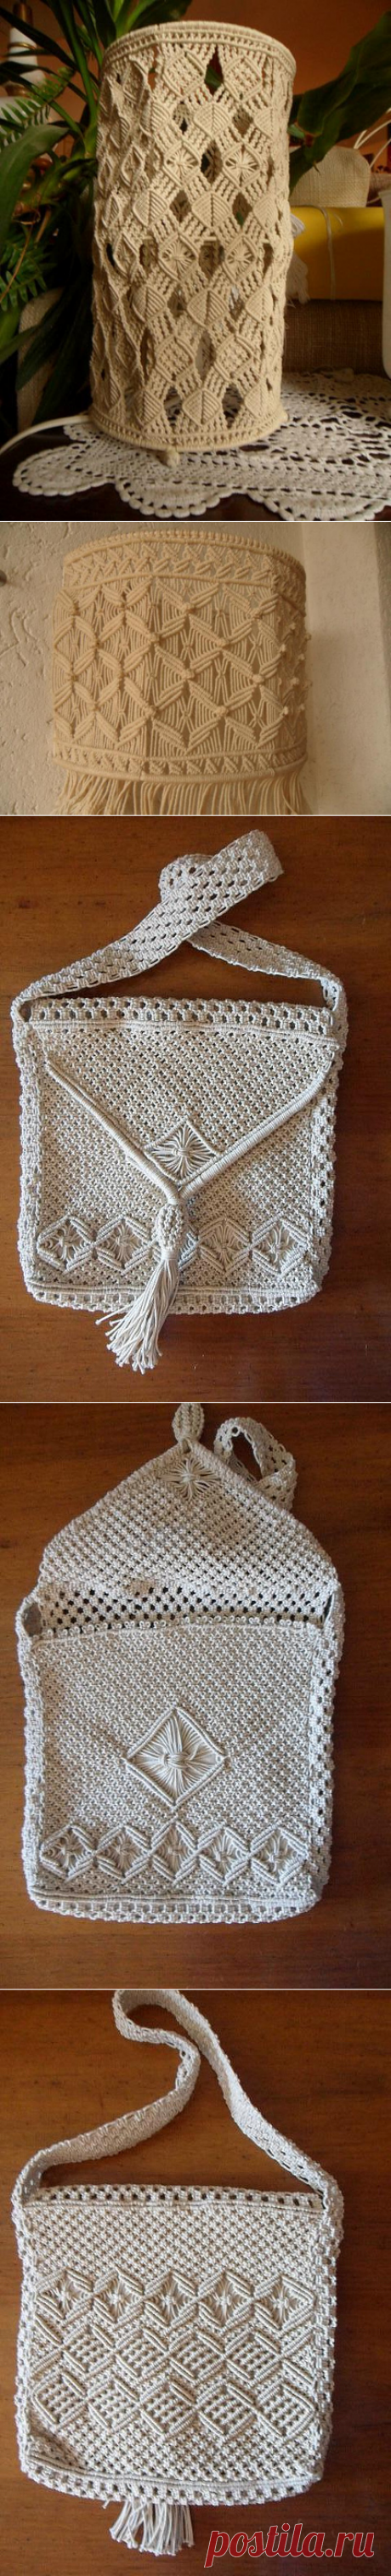 Macrame - a gallery on Flickr